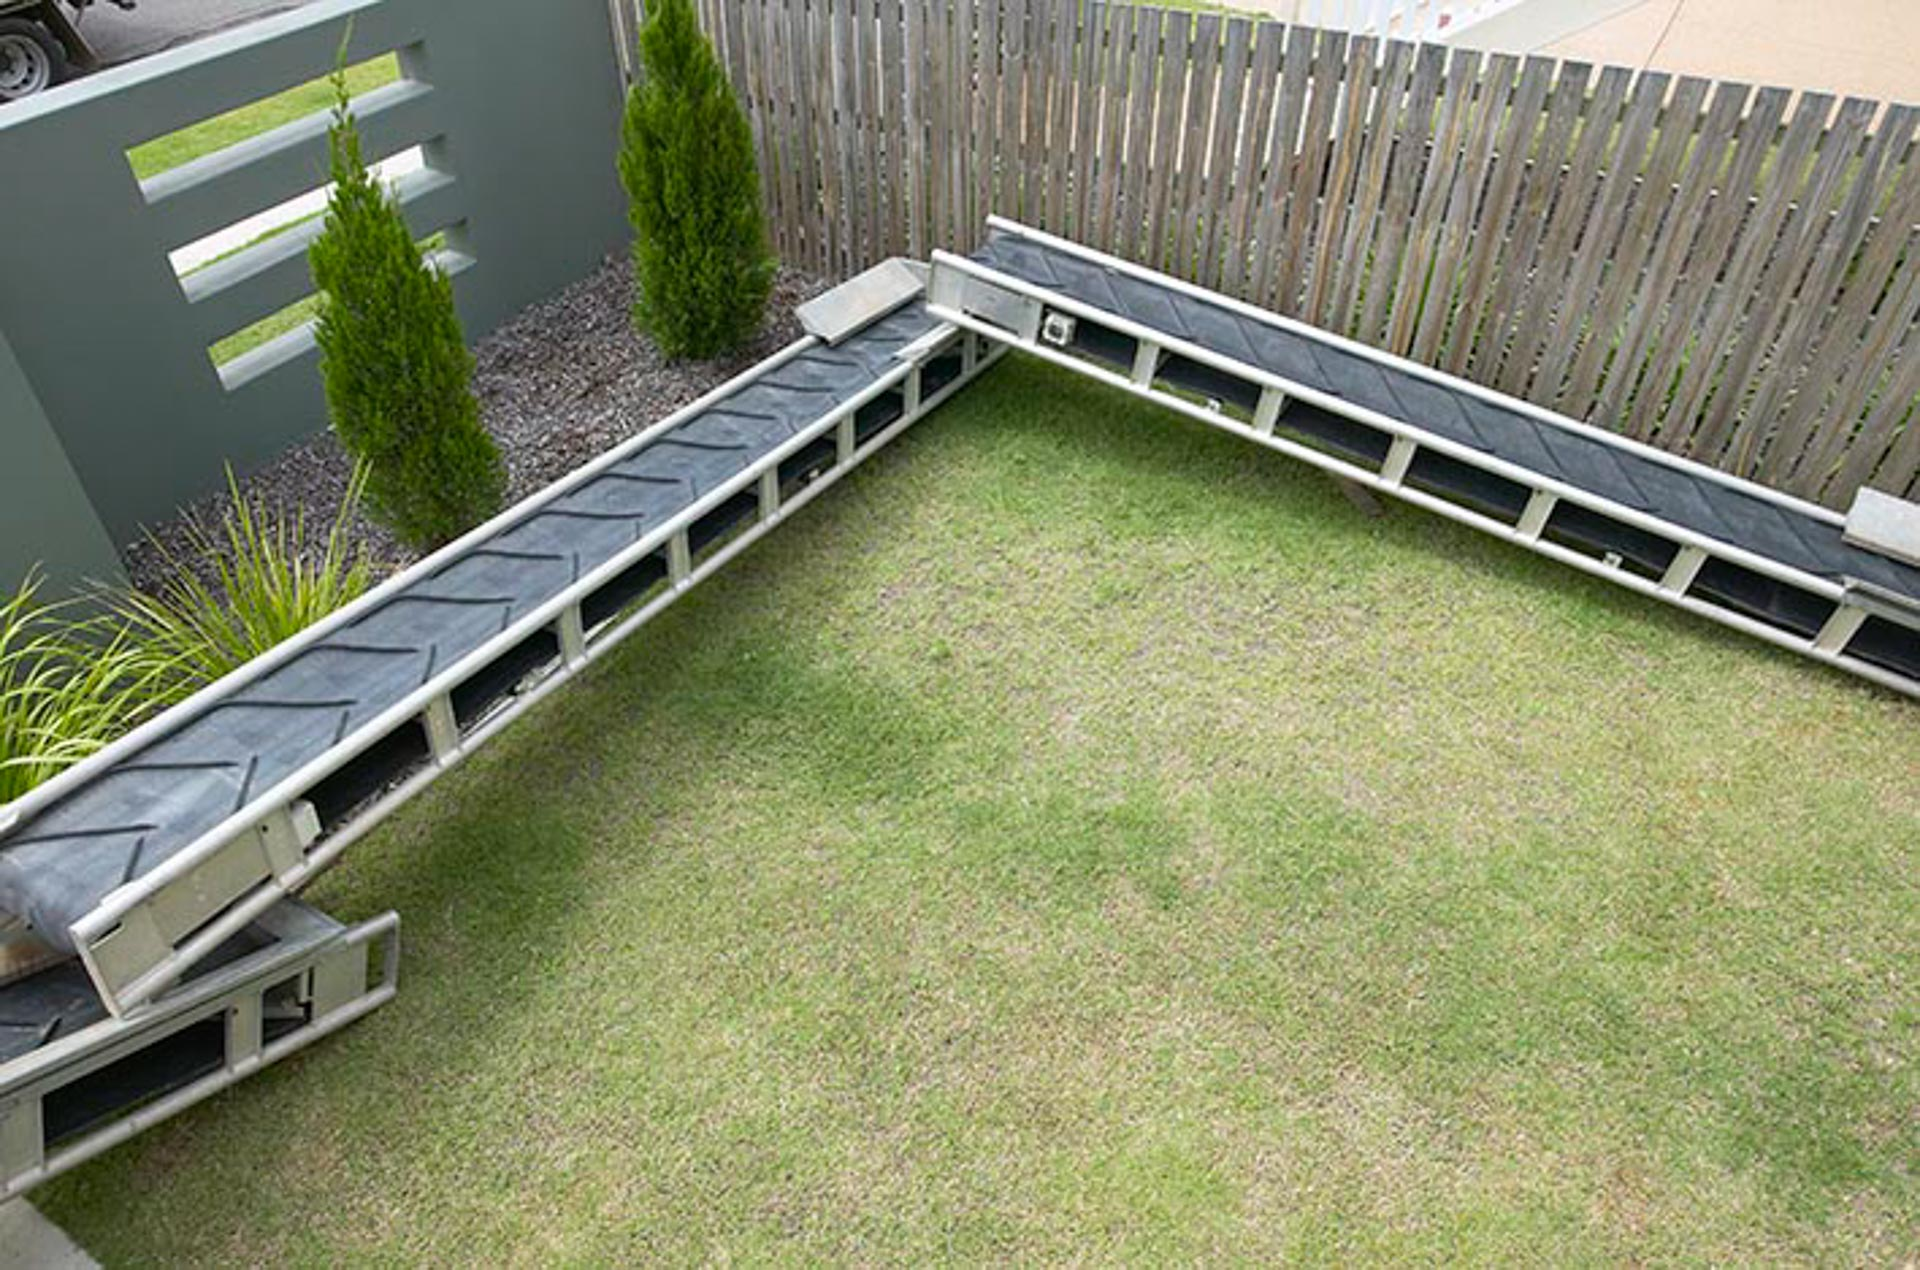 Conveyors to protect a lawn when moving soil in a narrow access area